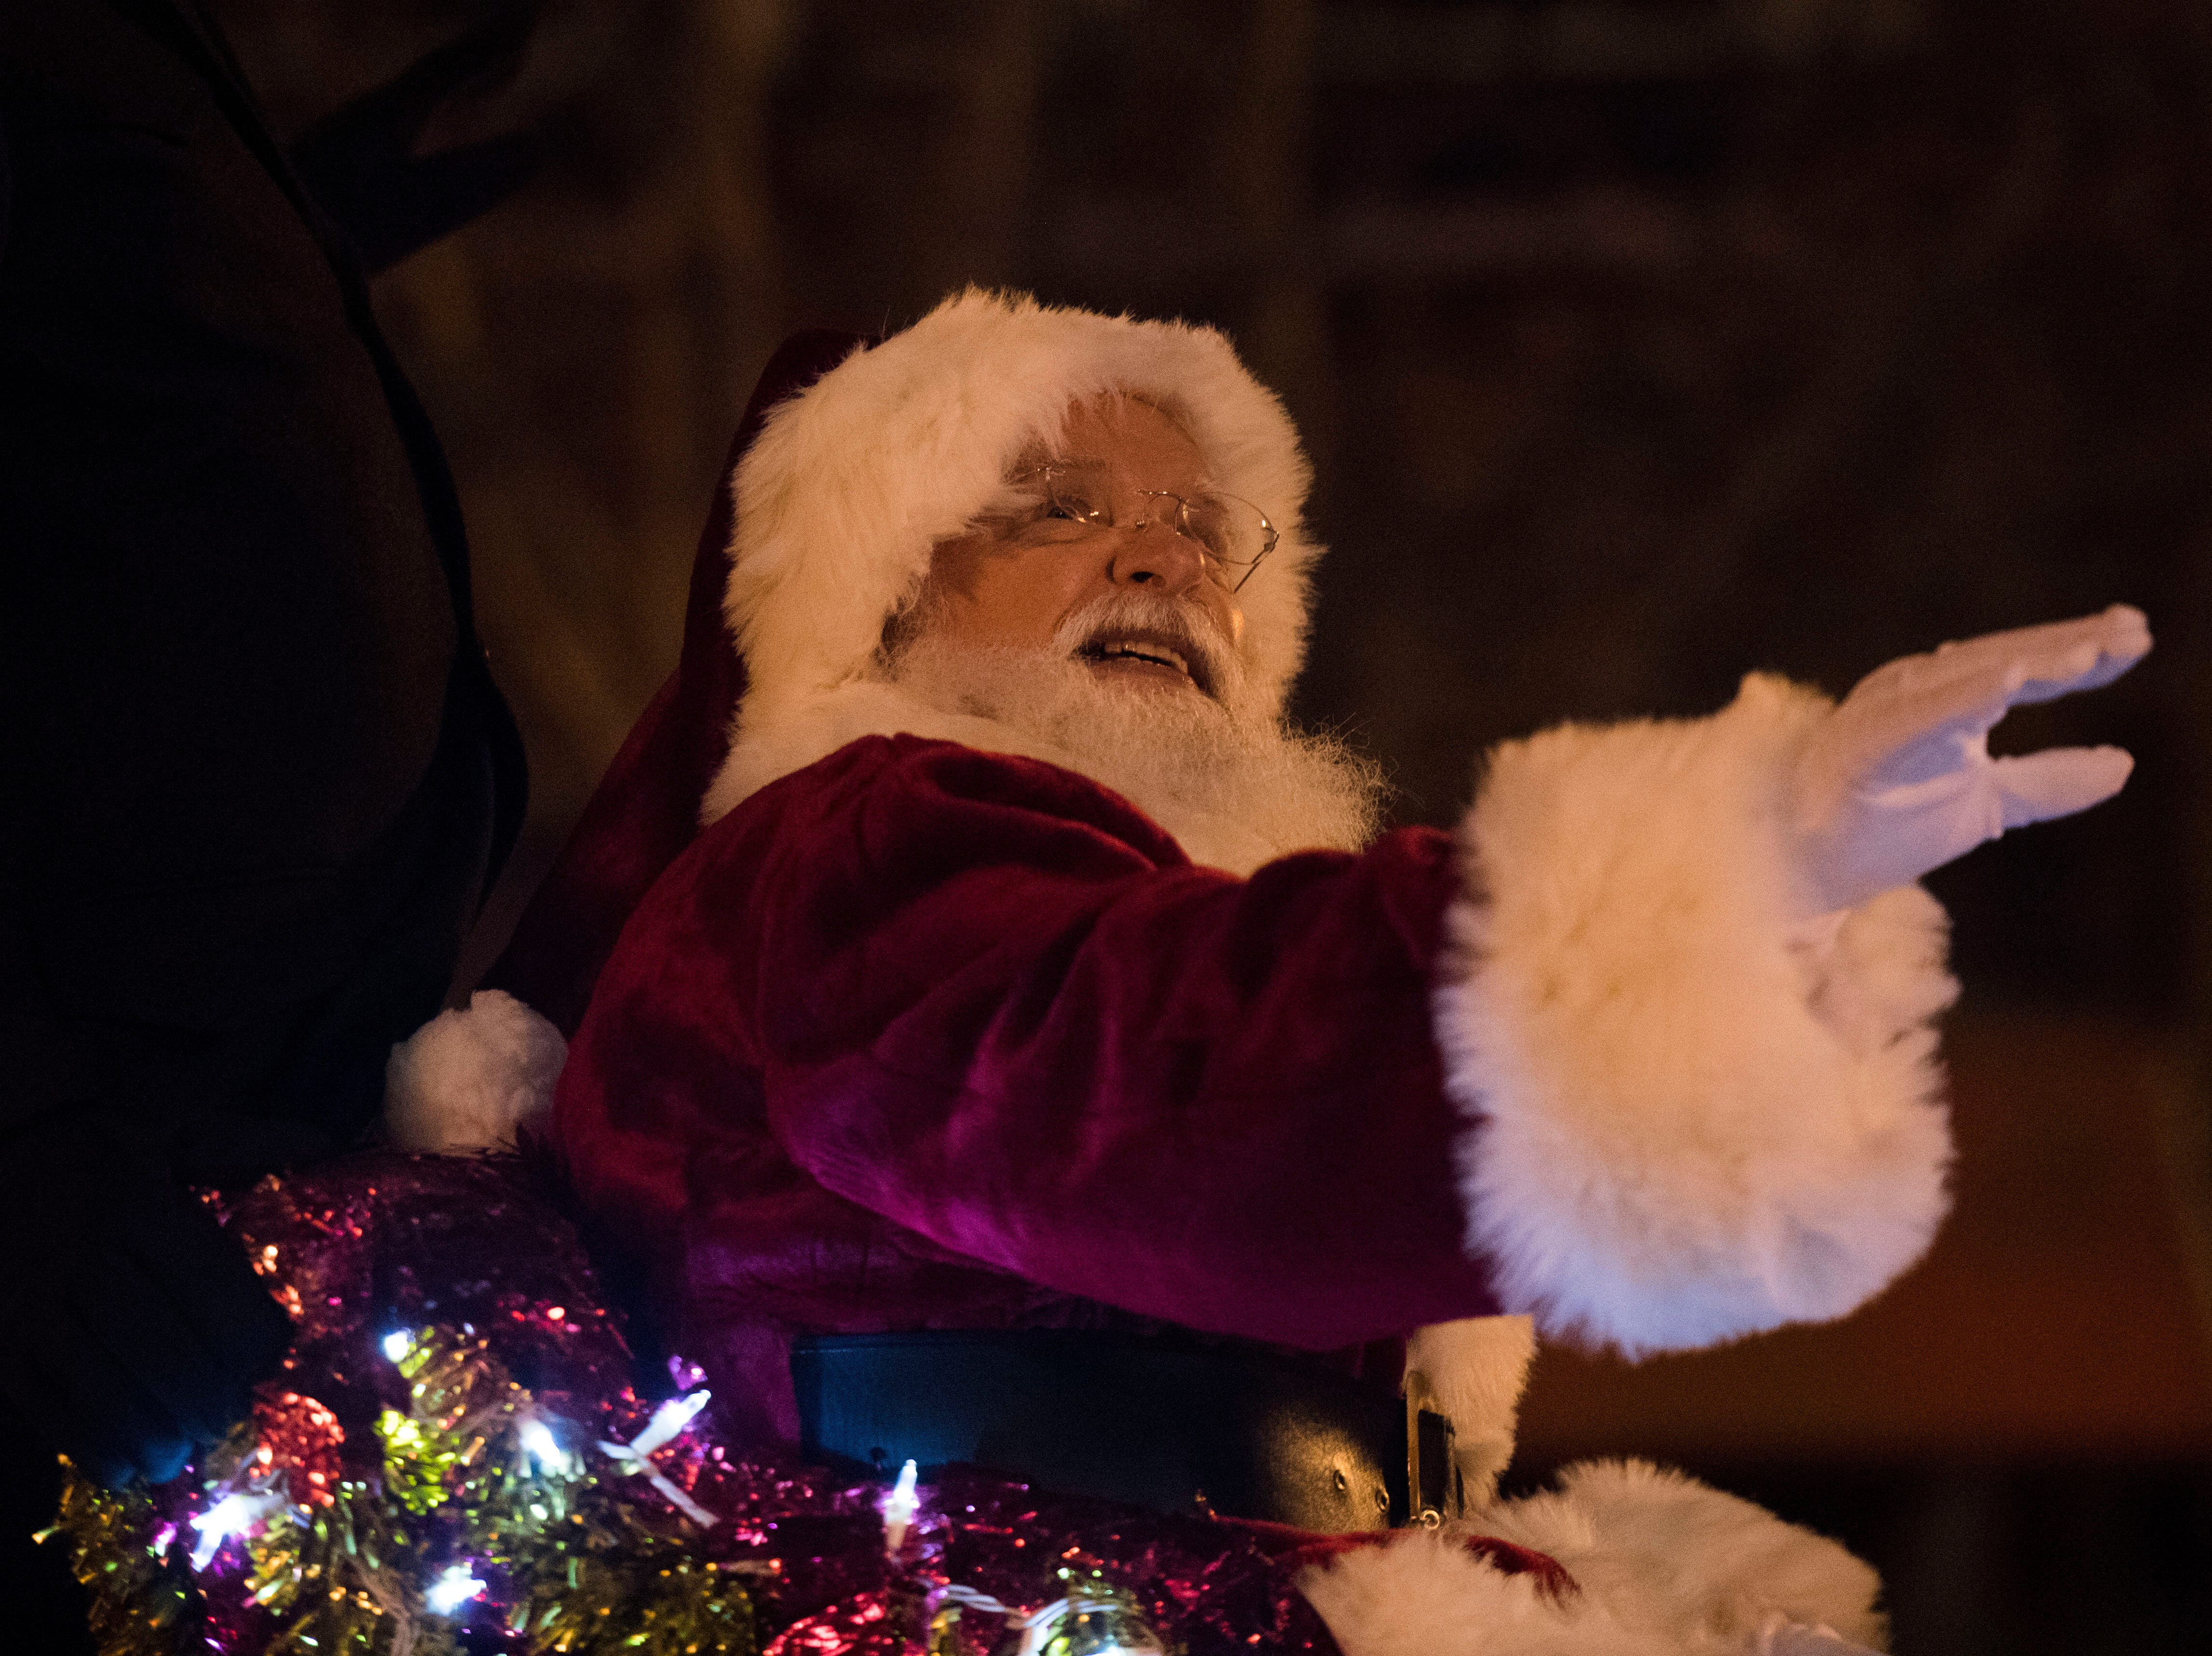 A man portraying Santa ends the annual WIVK Christmas Parade in downtown Knoxville Friday, Dec. 7, 2018.